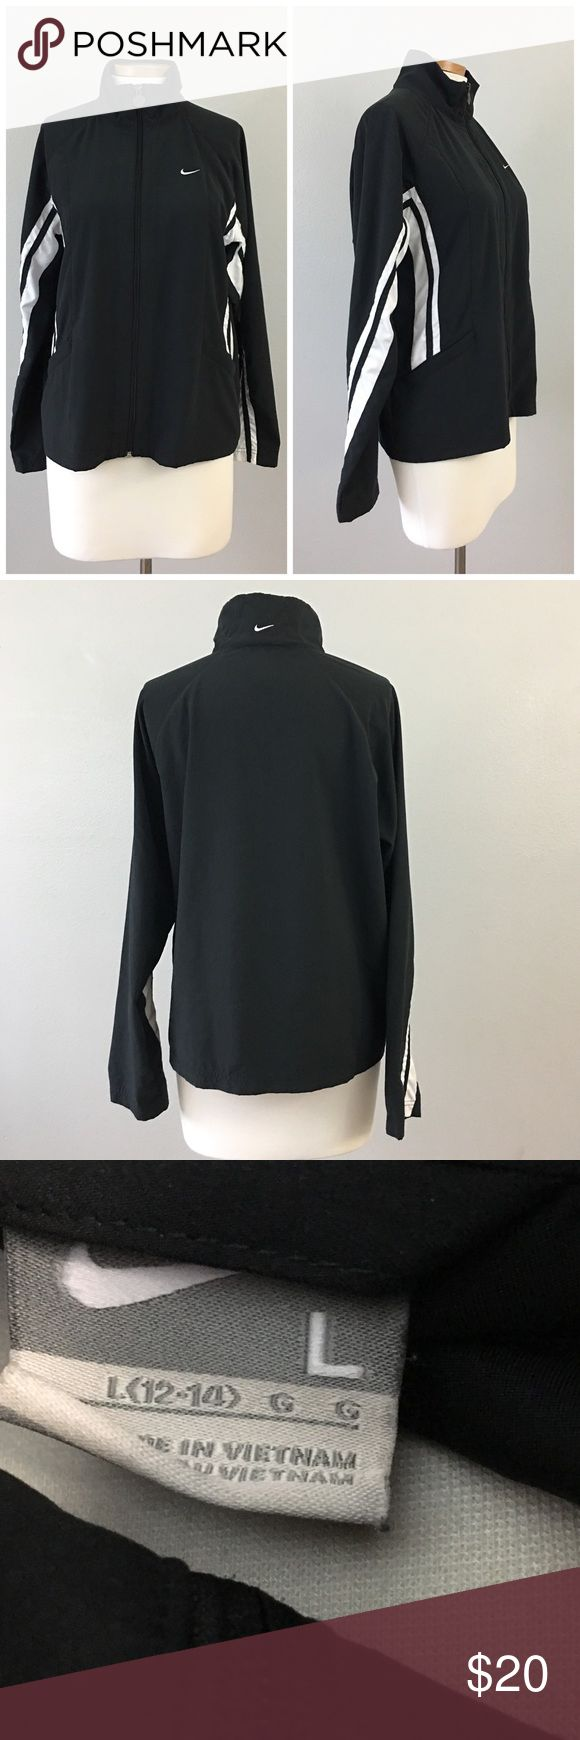 Nike Black & White Stripe Zip Up Track Jacket Nike Black & White Stripe Zip Up Track Jacket. Size large 12-14, runs slightly small. Would fit a 10-12 best! Thank you for looking at my listing. Please feel free to comment with any questions (no trades/modeling).  •Condition: very good! No visible holes or stains.   ✨Bundle and save!✨10% off 2 items, 20% off 3 items & 30% off 5+ items! KB Nike Jackets & Coats